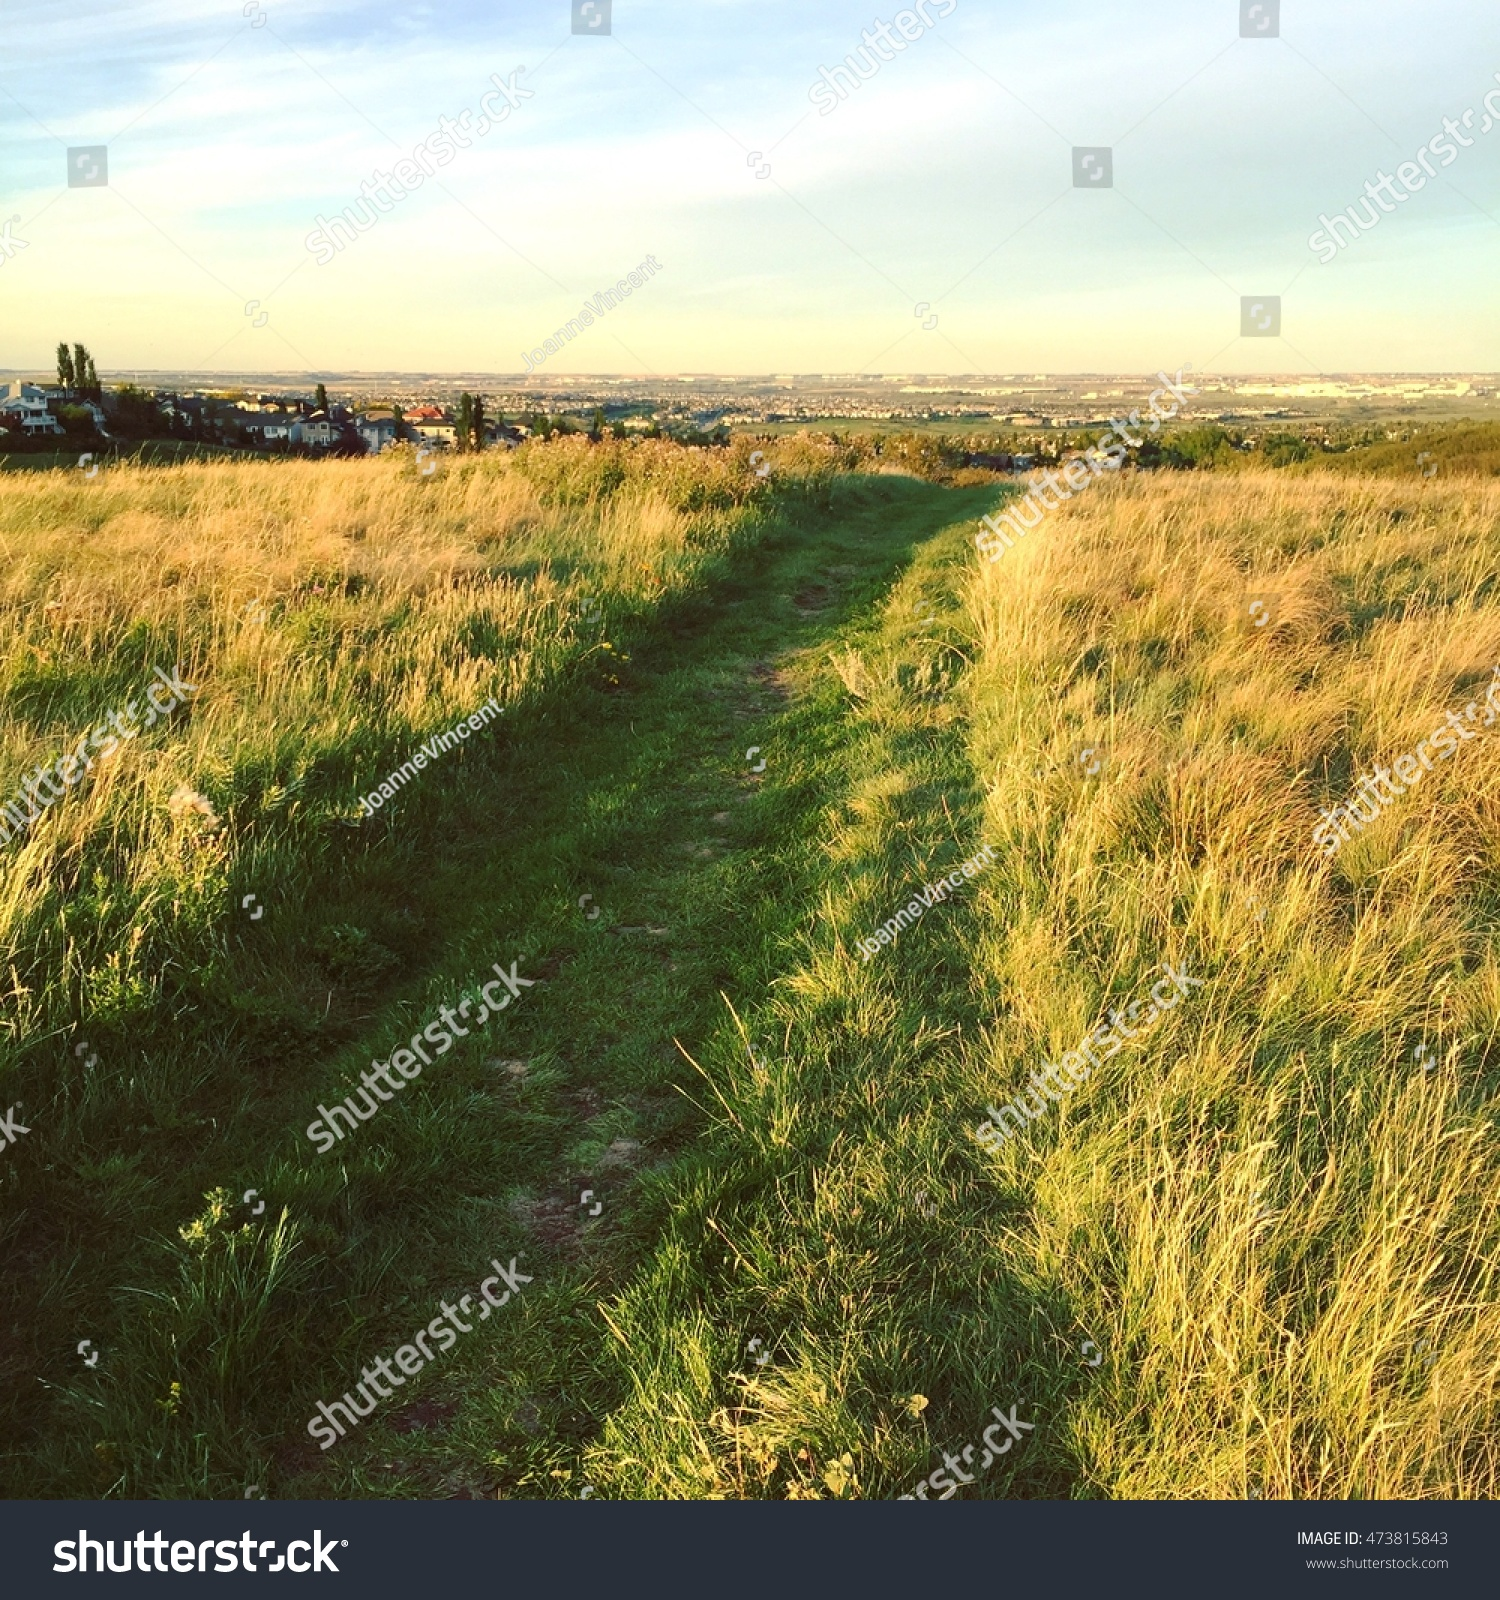 tall grass field sunset. Wide Green Grass Path Through Bright Prairie Field At Sunset With Trees,colorful Clouds Tall